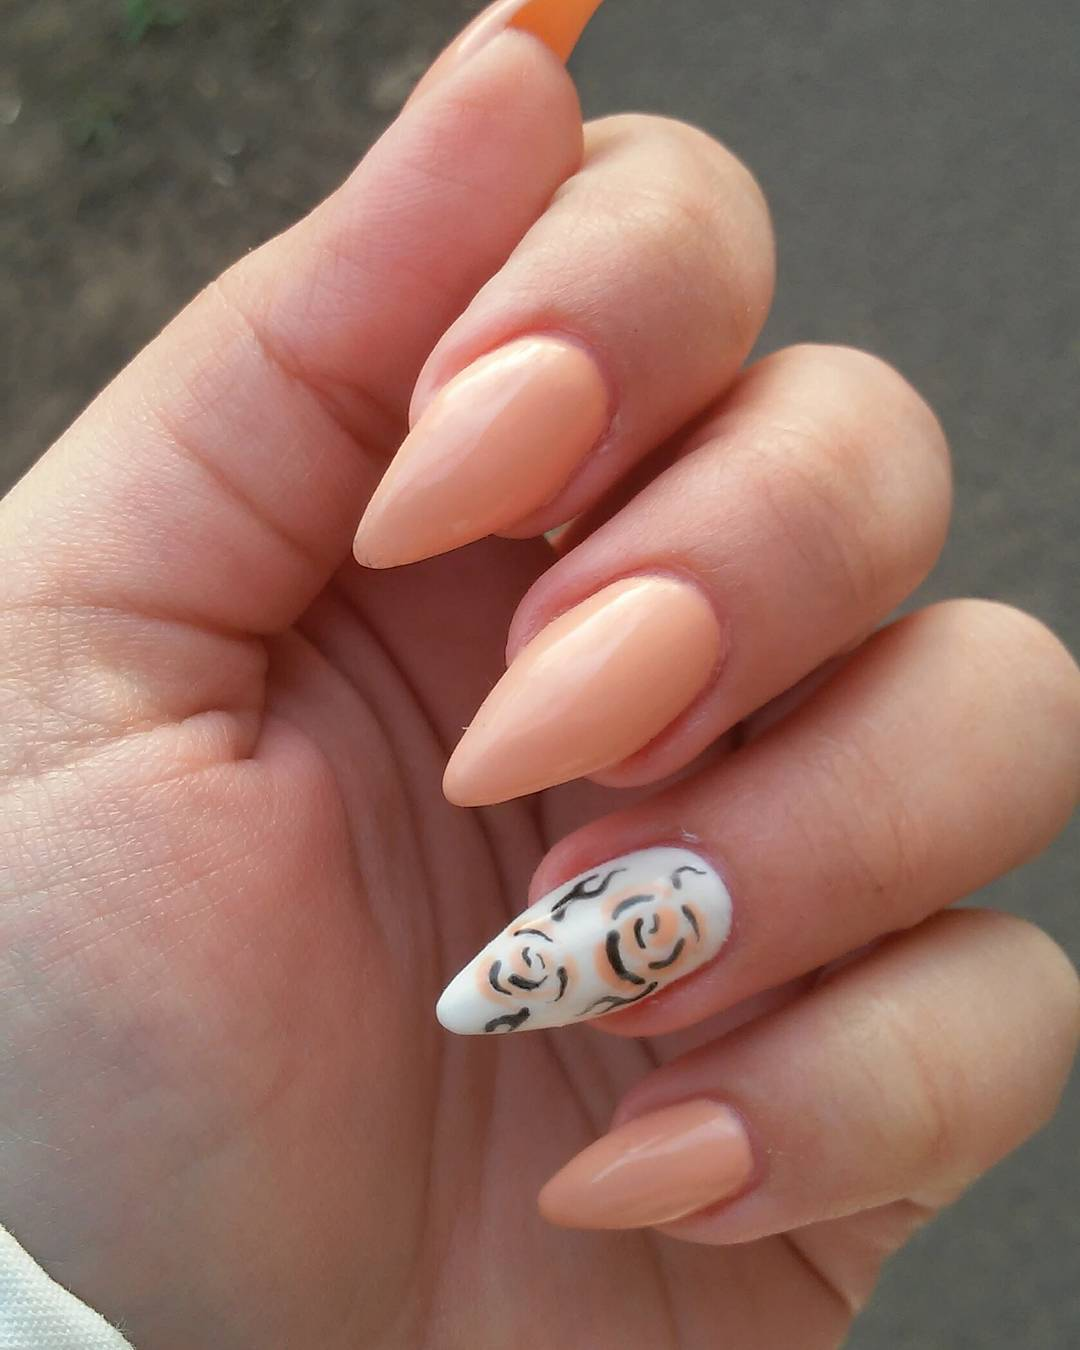 Nail Art Ideas: 21+ Peach Nail Art Designs, Ideas